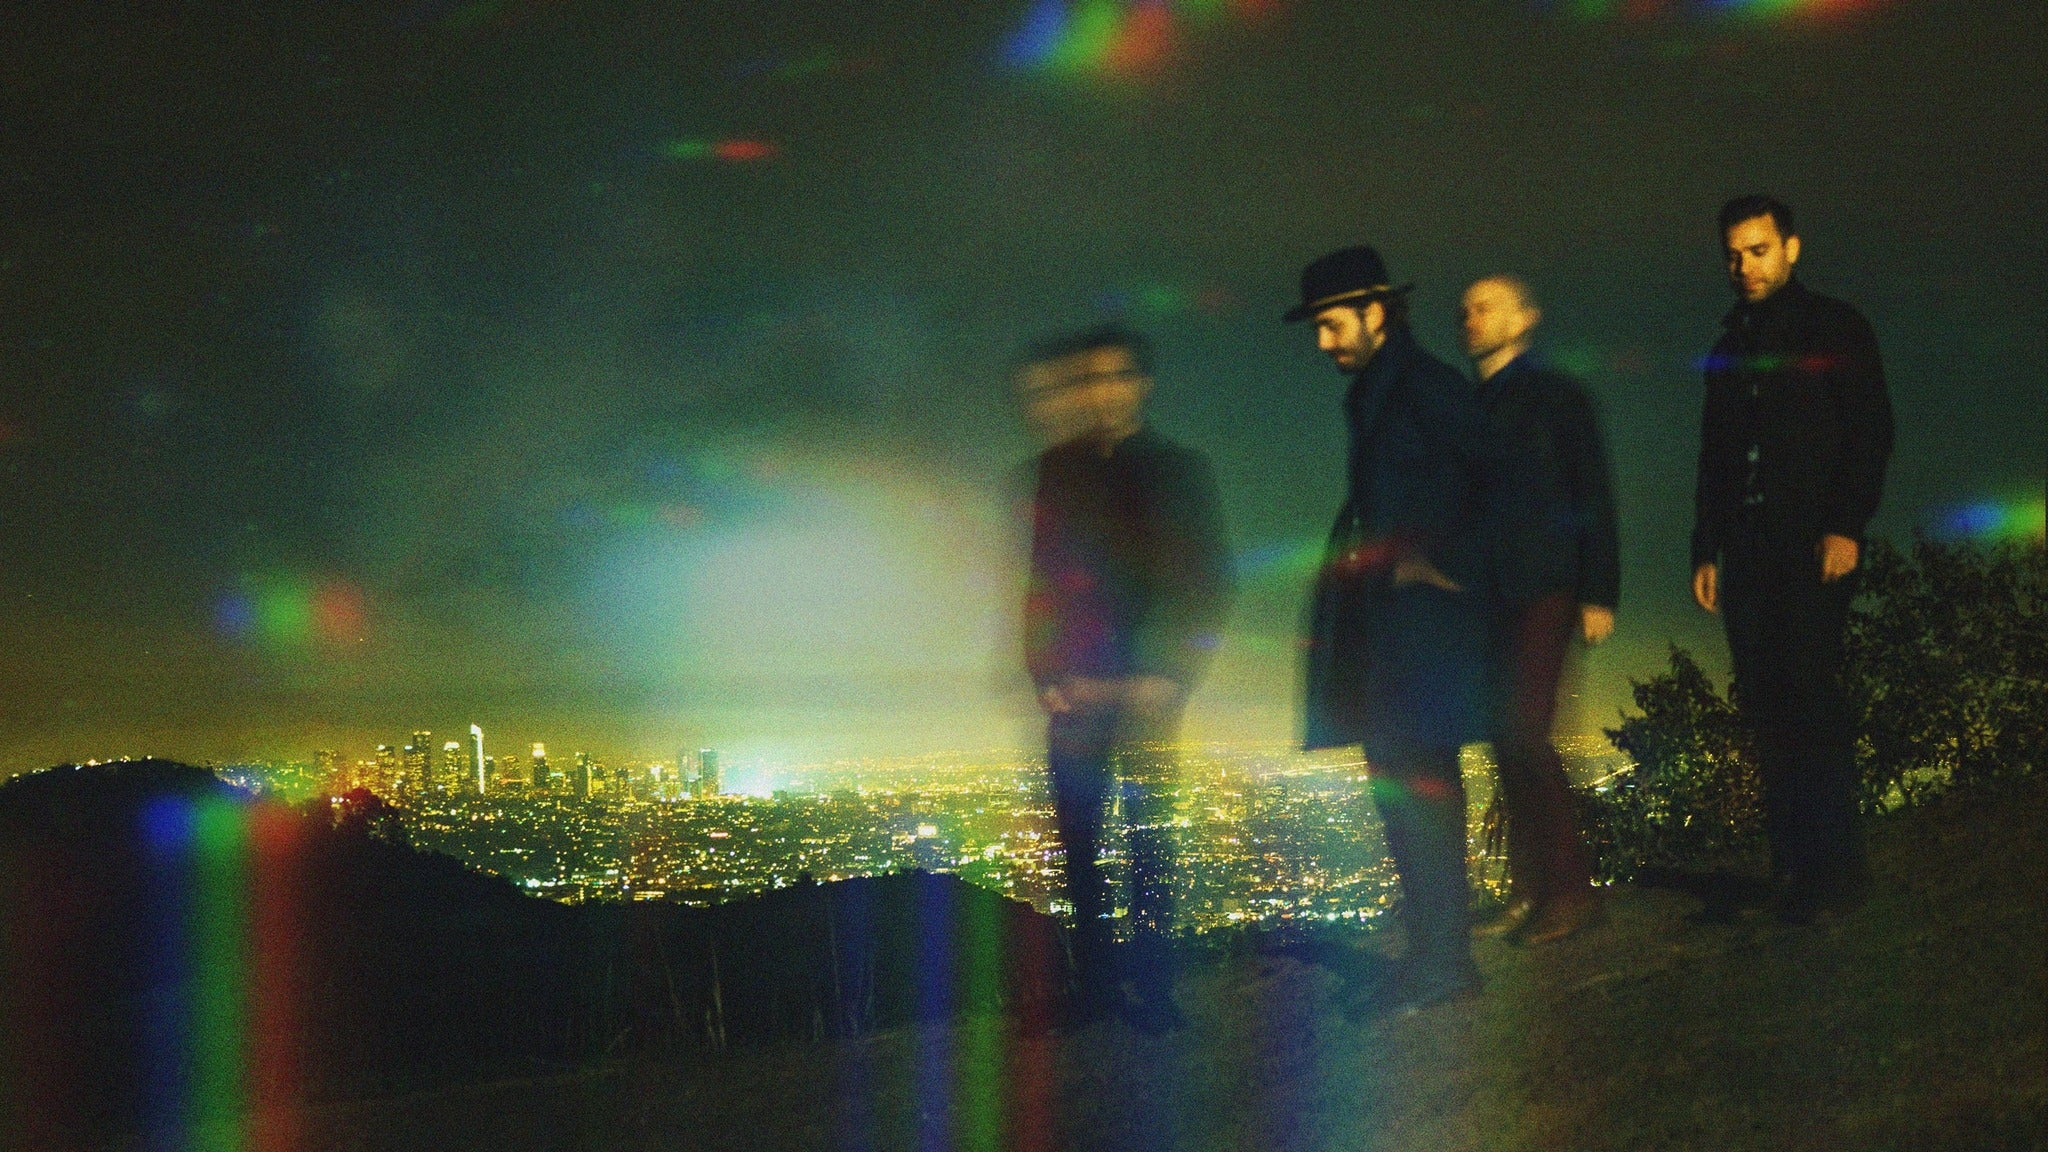 [Sold Out] Lord Huron, Shakey Graves